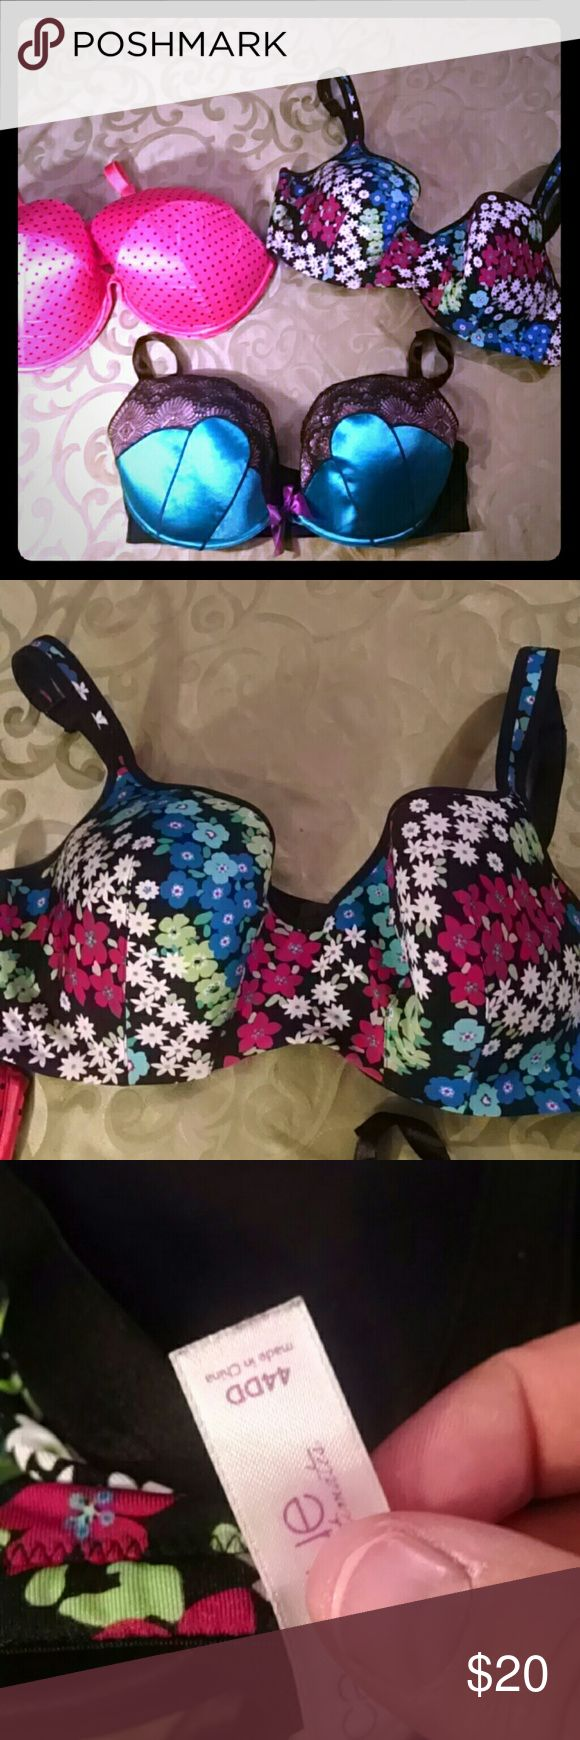 3 Cacique 44DD bras in used condition The coral and the teal are both padded plunge bras. As you can see from last picture the paint is coming off the hooks on the coral, but all hooks and eyes are still in good shape. These bras have never seen the dryer. Teal bra has a little freyed edge on the left strap. Bands on both plunge bras are a little stretched. The last bra is a balconette bra that was only worn a couple times. Cacique Intimates & Sleepwear Bras